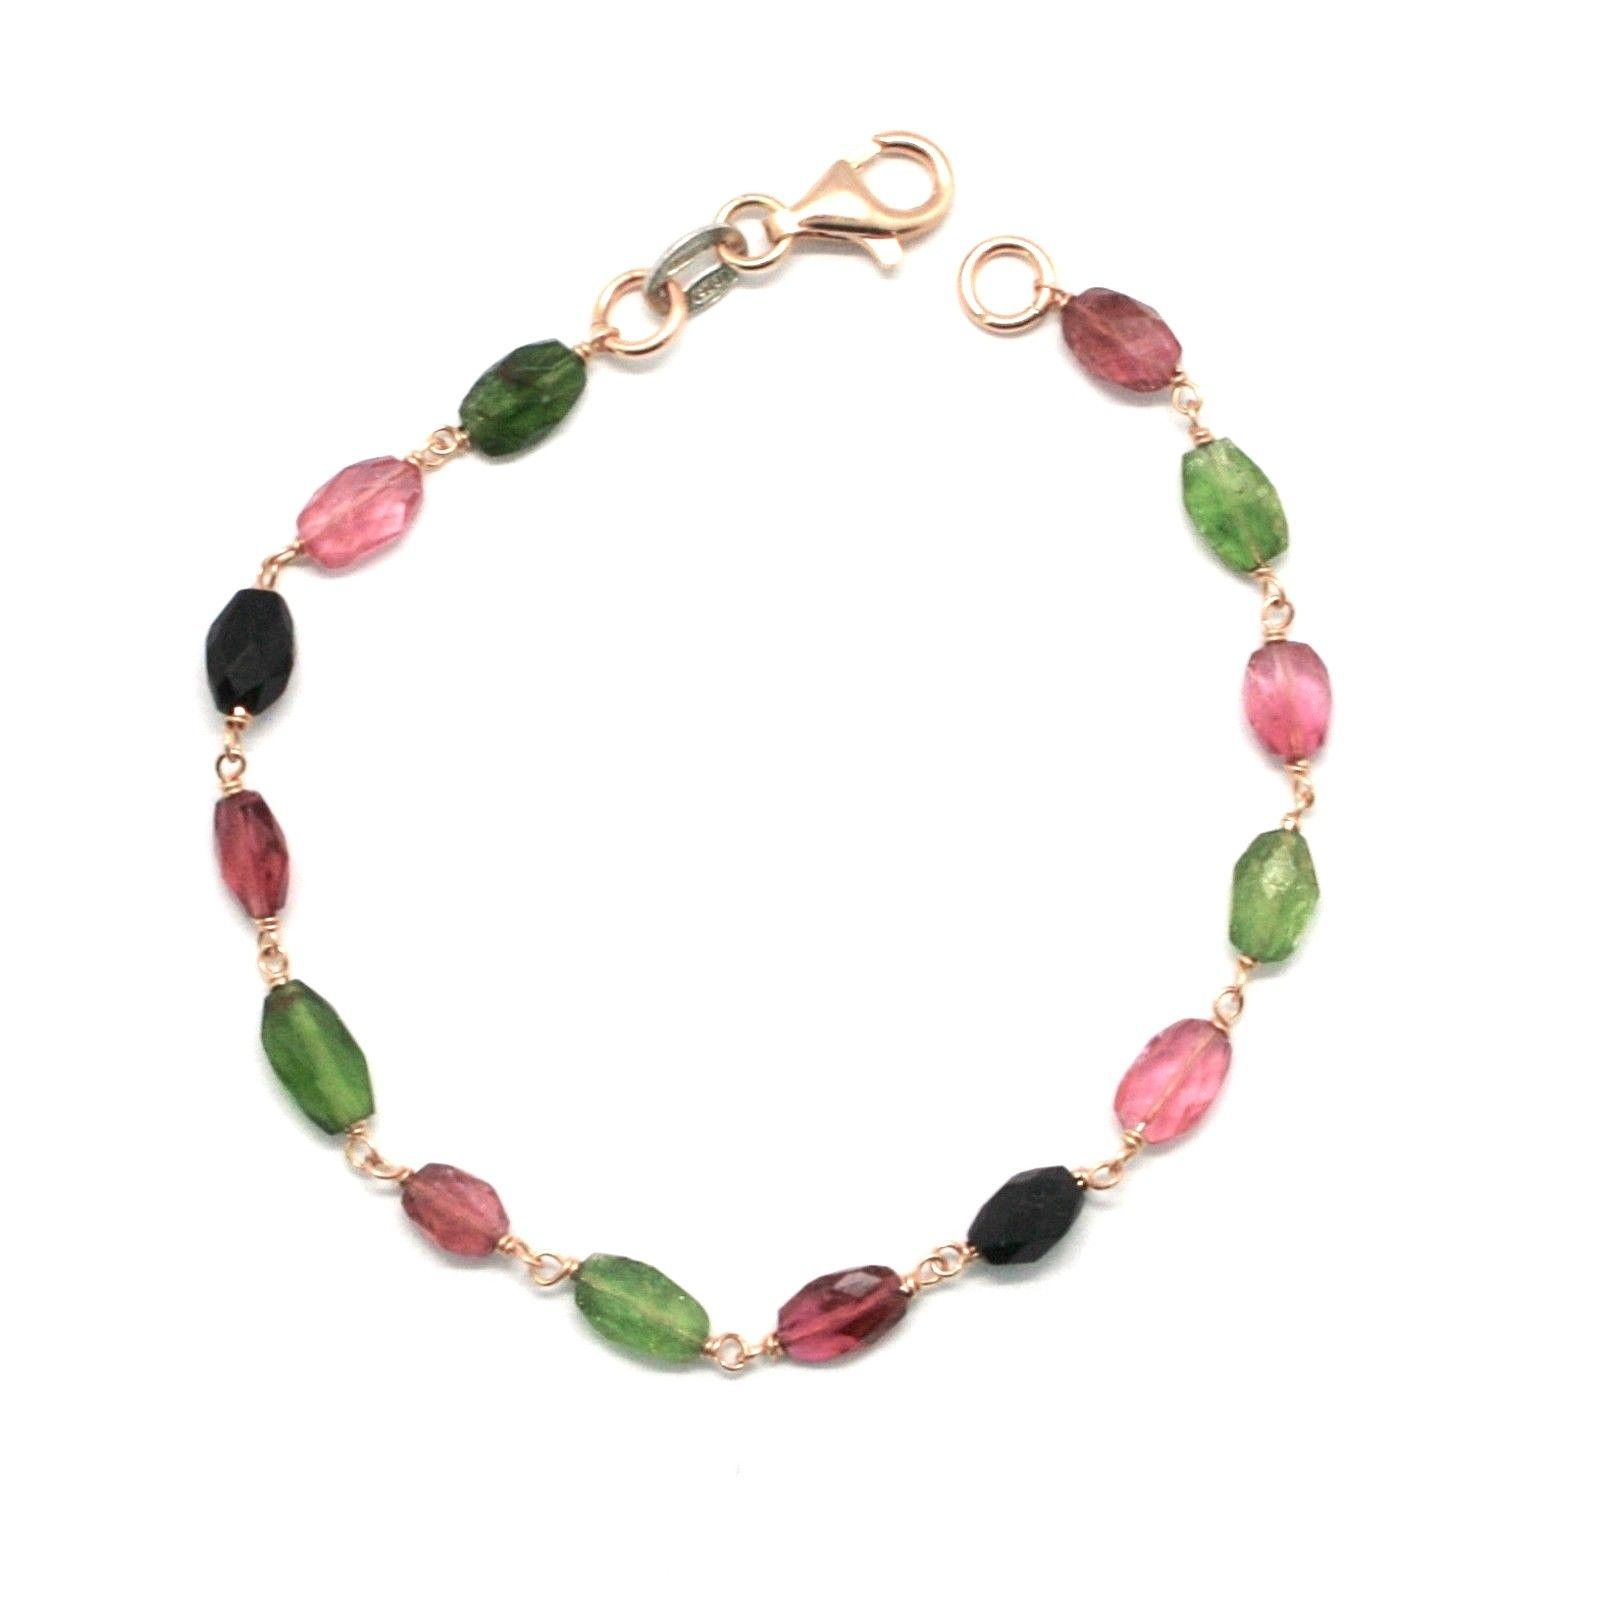 Primary image for BRACCIALE IN ARGENTO 925 CON TORMALINE VERDI E ROSA SFACCETTATE MADE IN ITALY